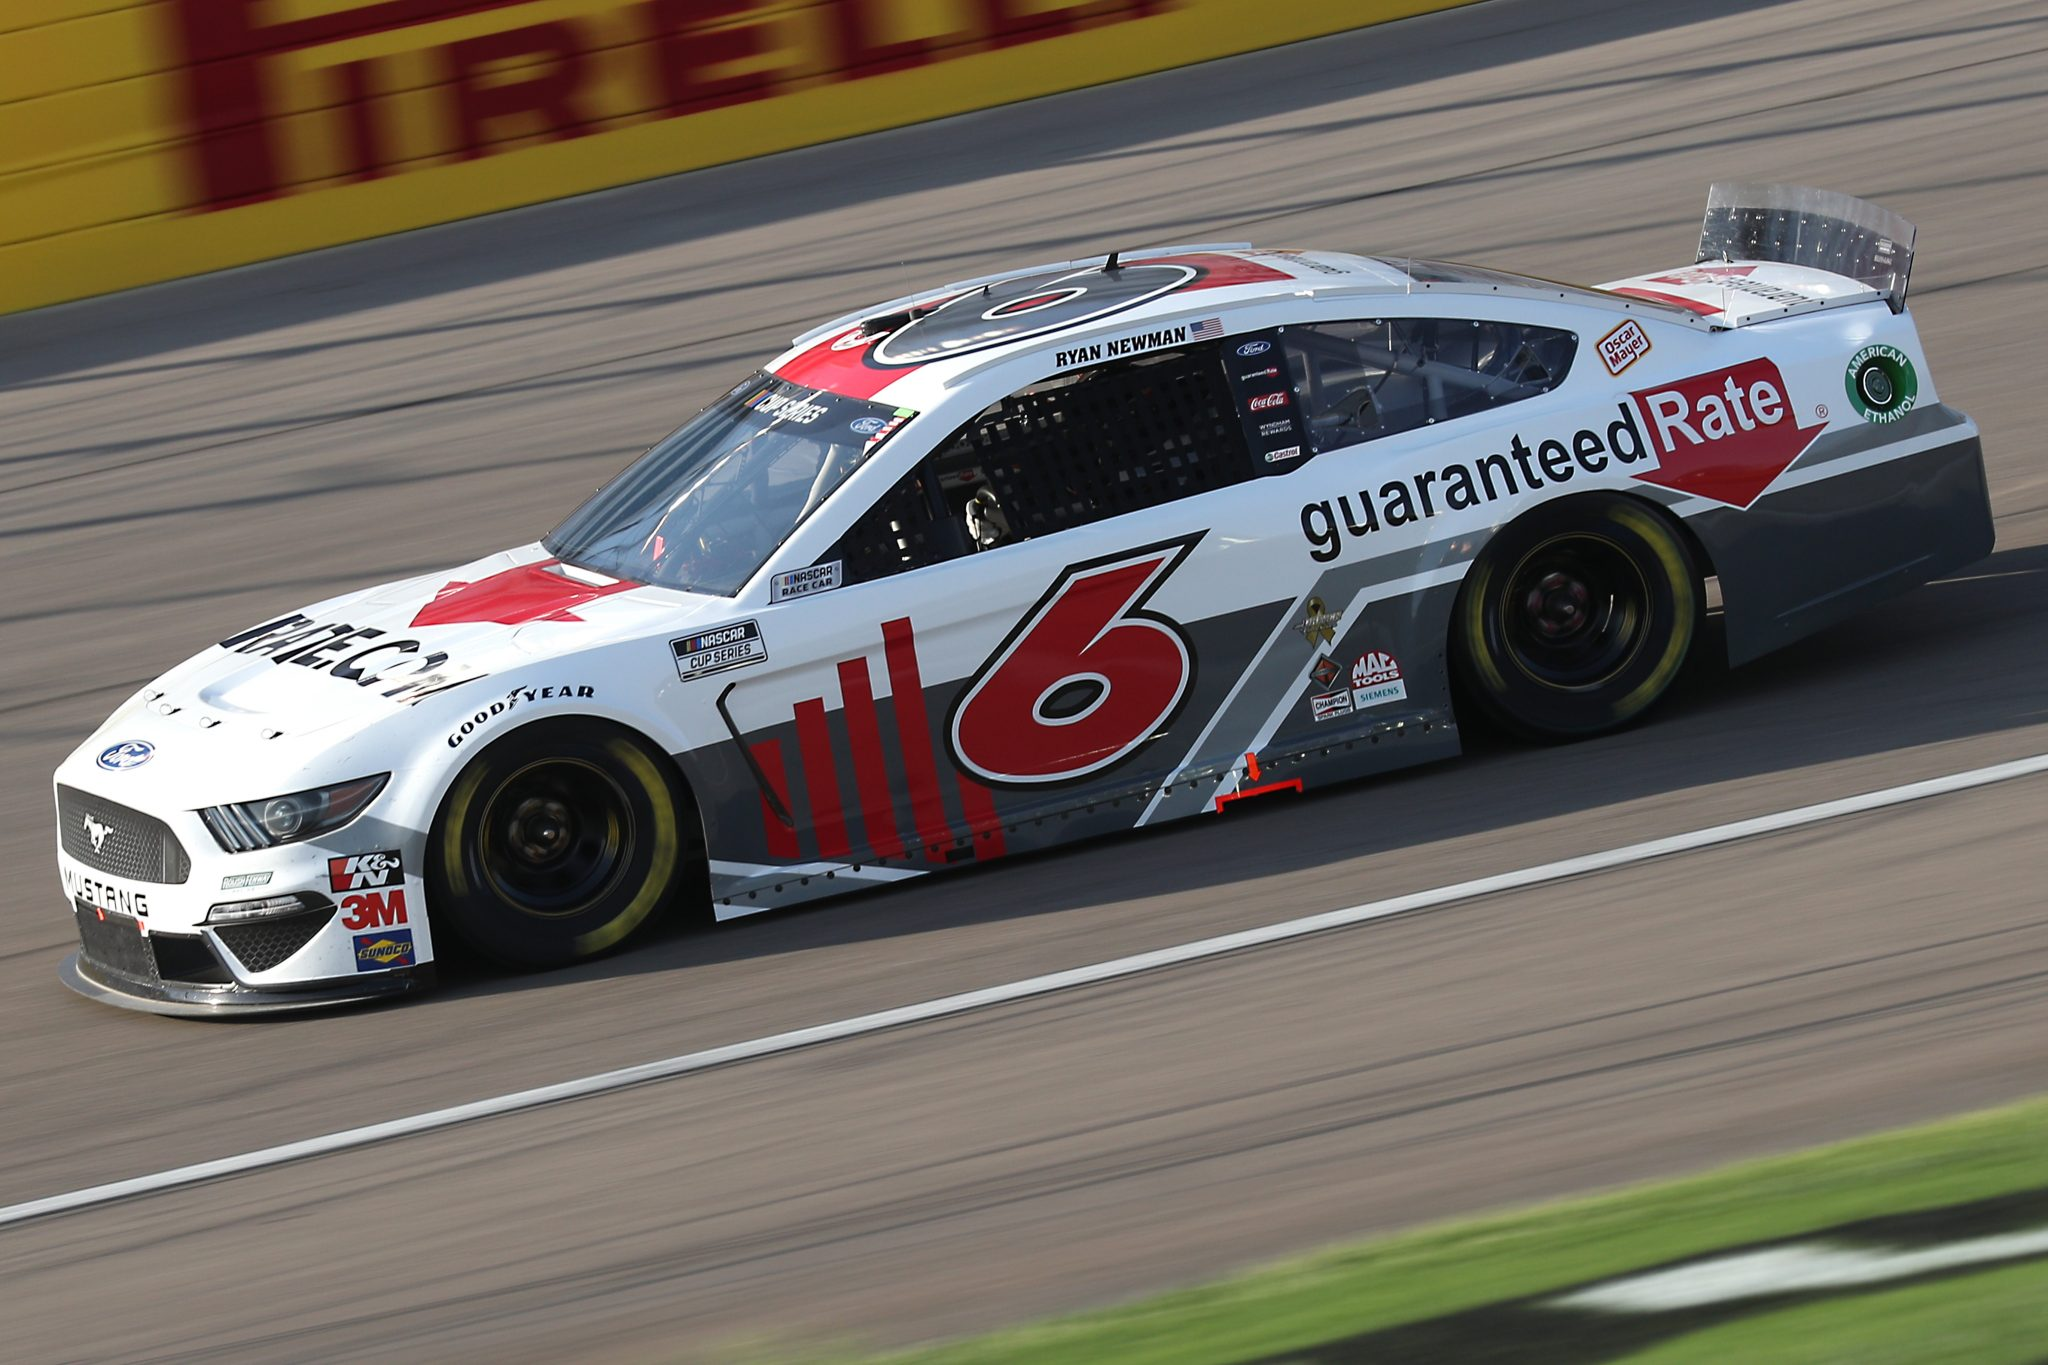 LAS VEGAS, NEVADA - SEPTEMBER 27: Ryan Newman, driver of the #6 Guaranteed Rate Ford, drives during the NASCAR Cup Series South Point 400 at Las Vegas Motor Speedway on September 27, 2020 in Las Vegas, Nevada. (Photo by Chris Graythen/Getty Images) | Getty Images